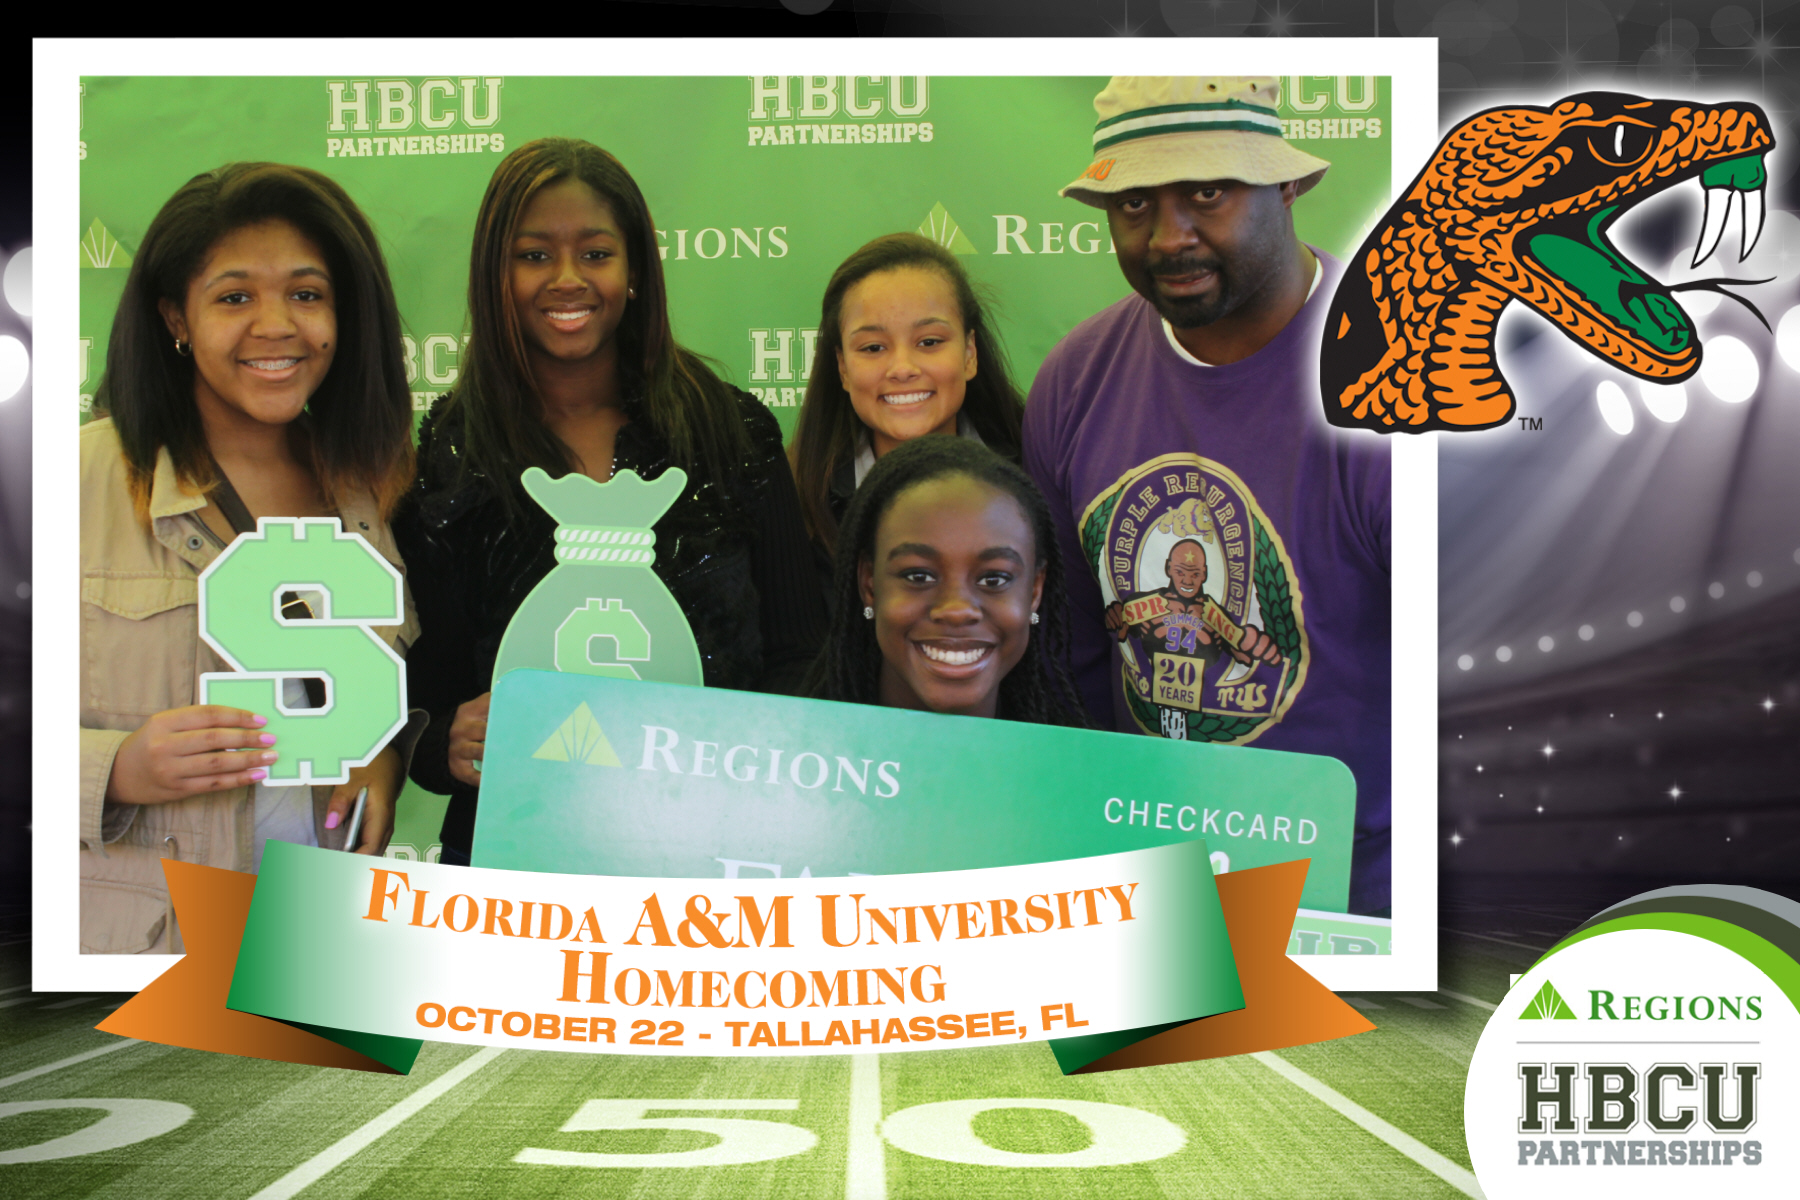 Regions - FAMU Homecoming